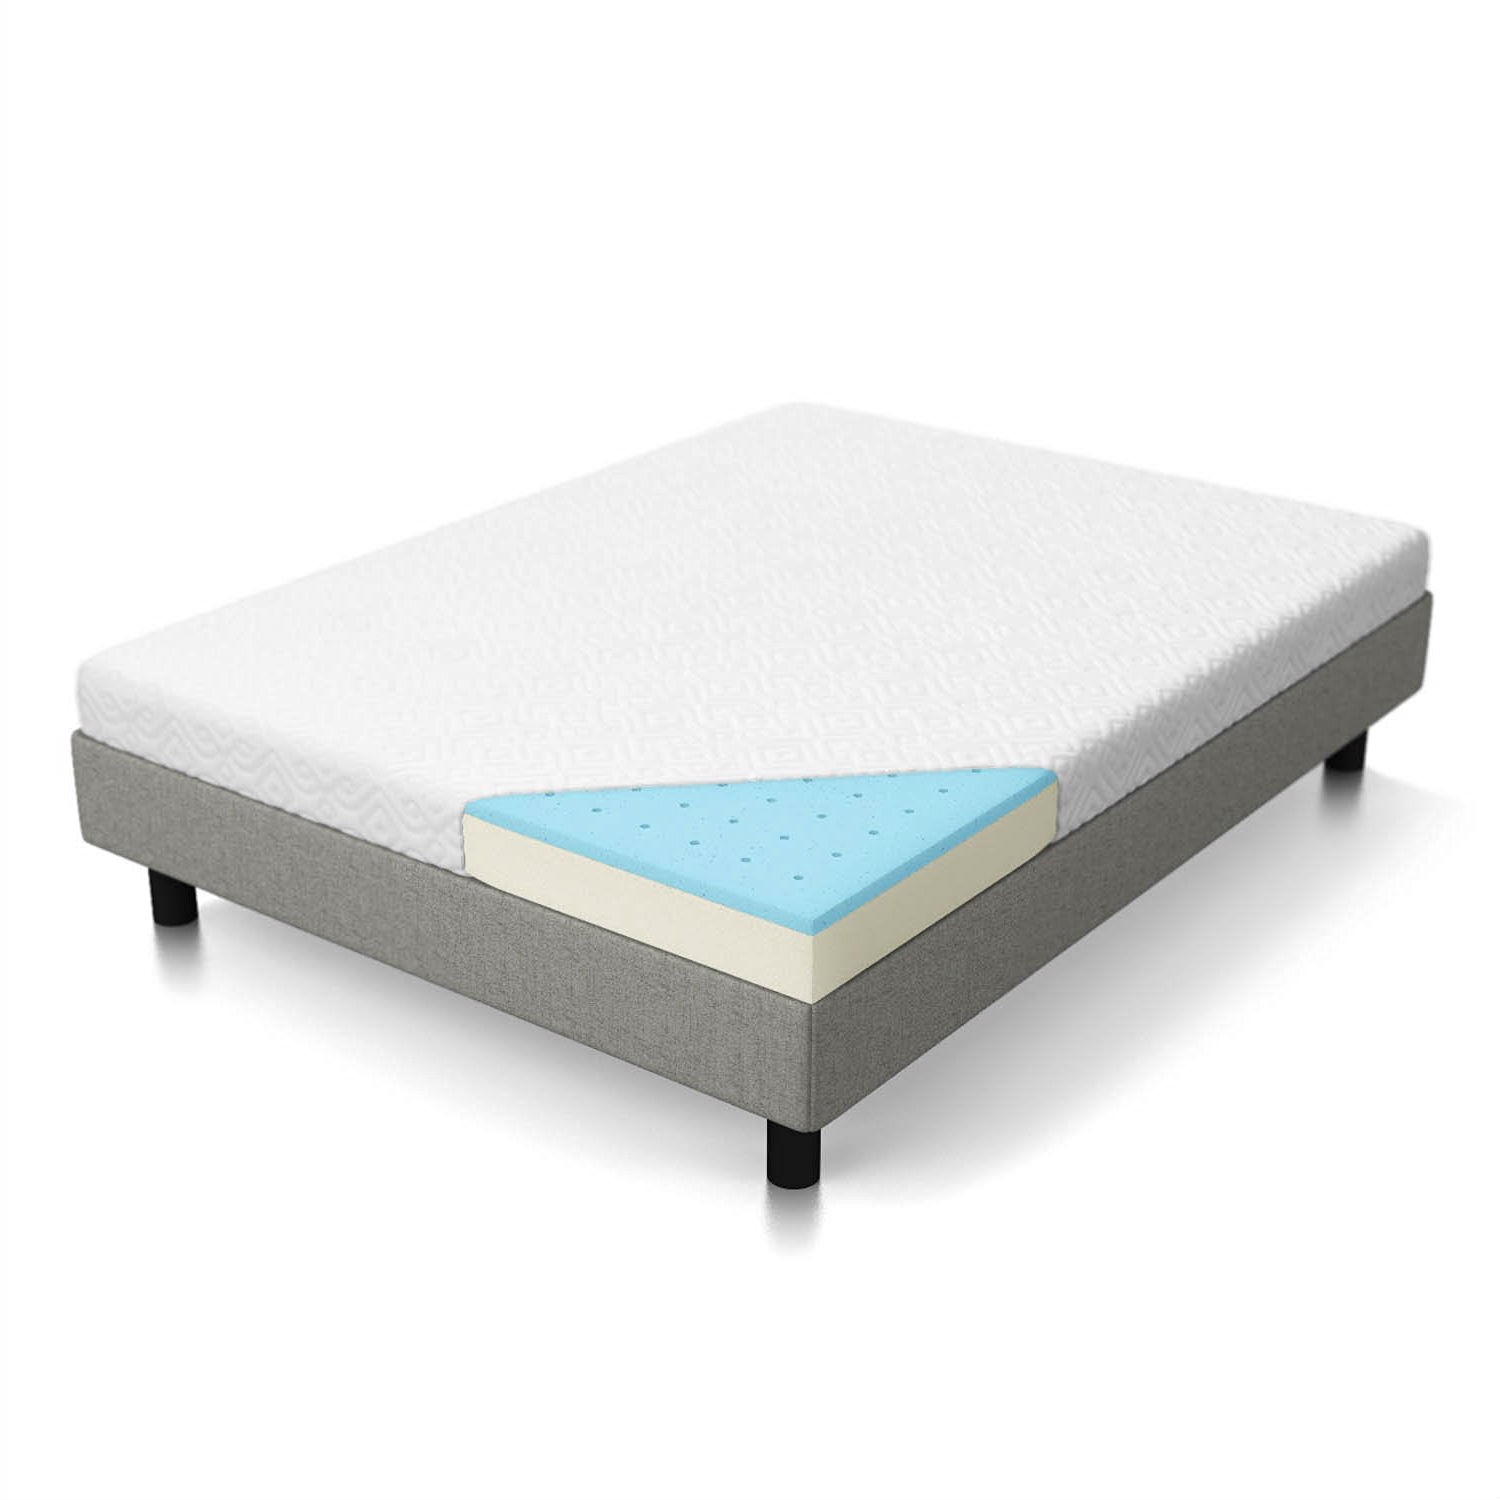 california king 5 inch firm gel memory foam mattress - California King Memory Foam Mattress